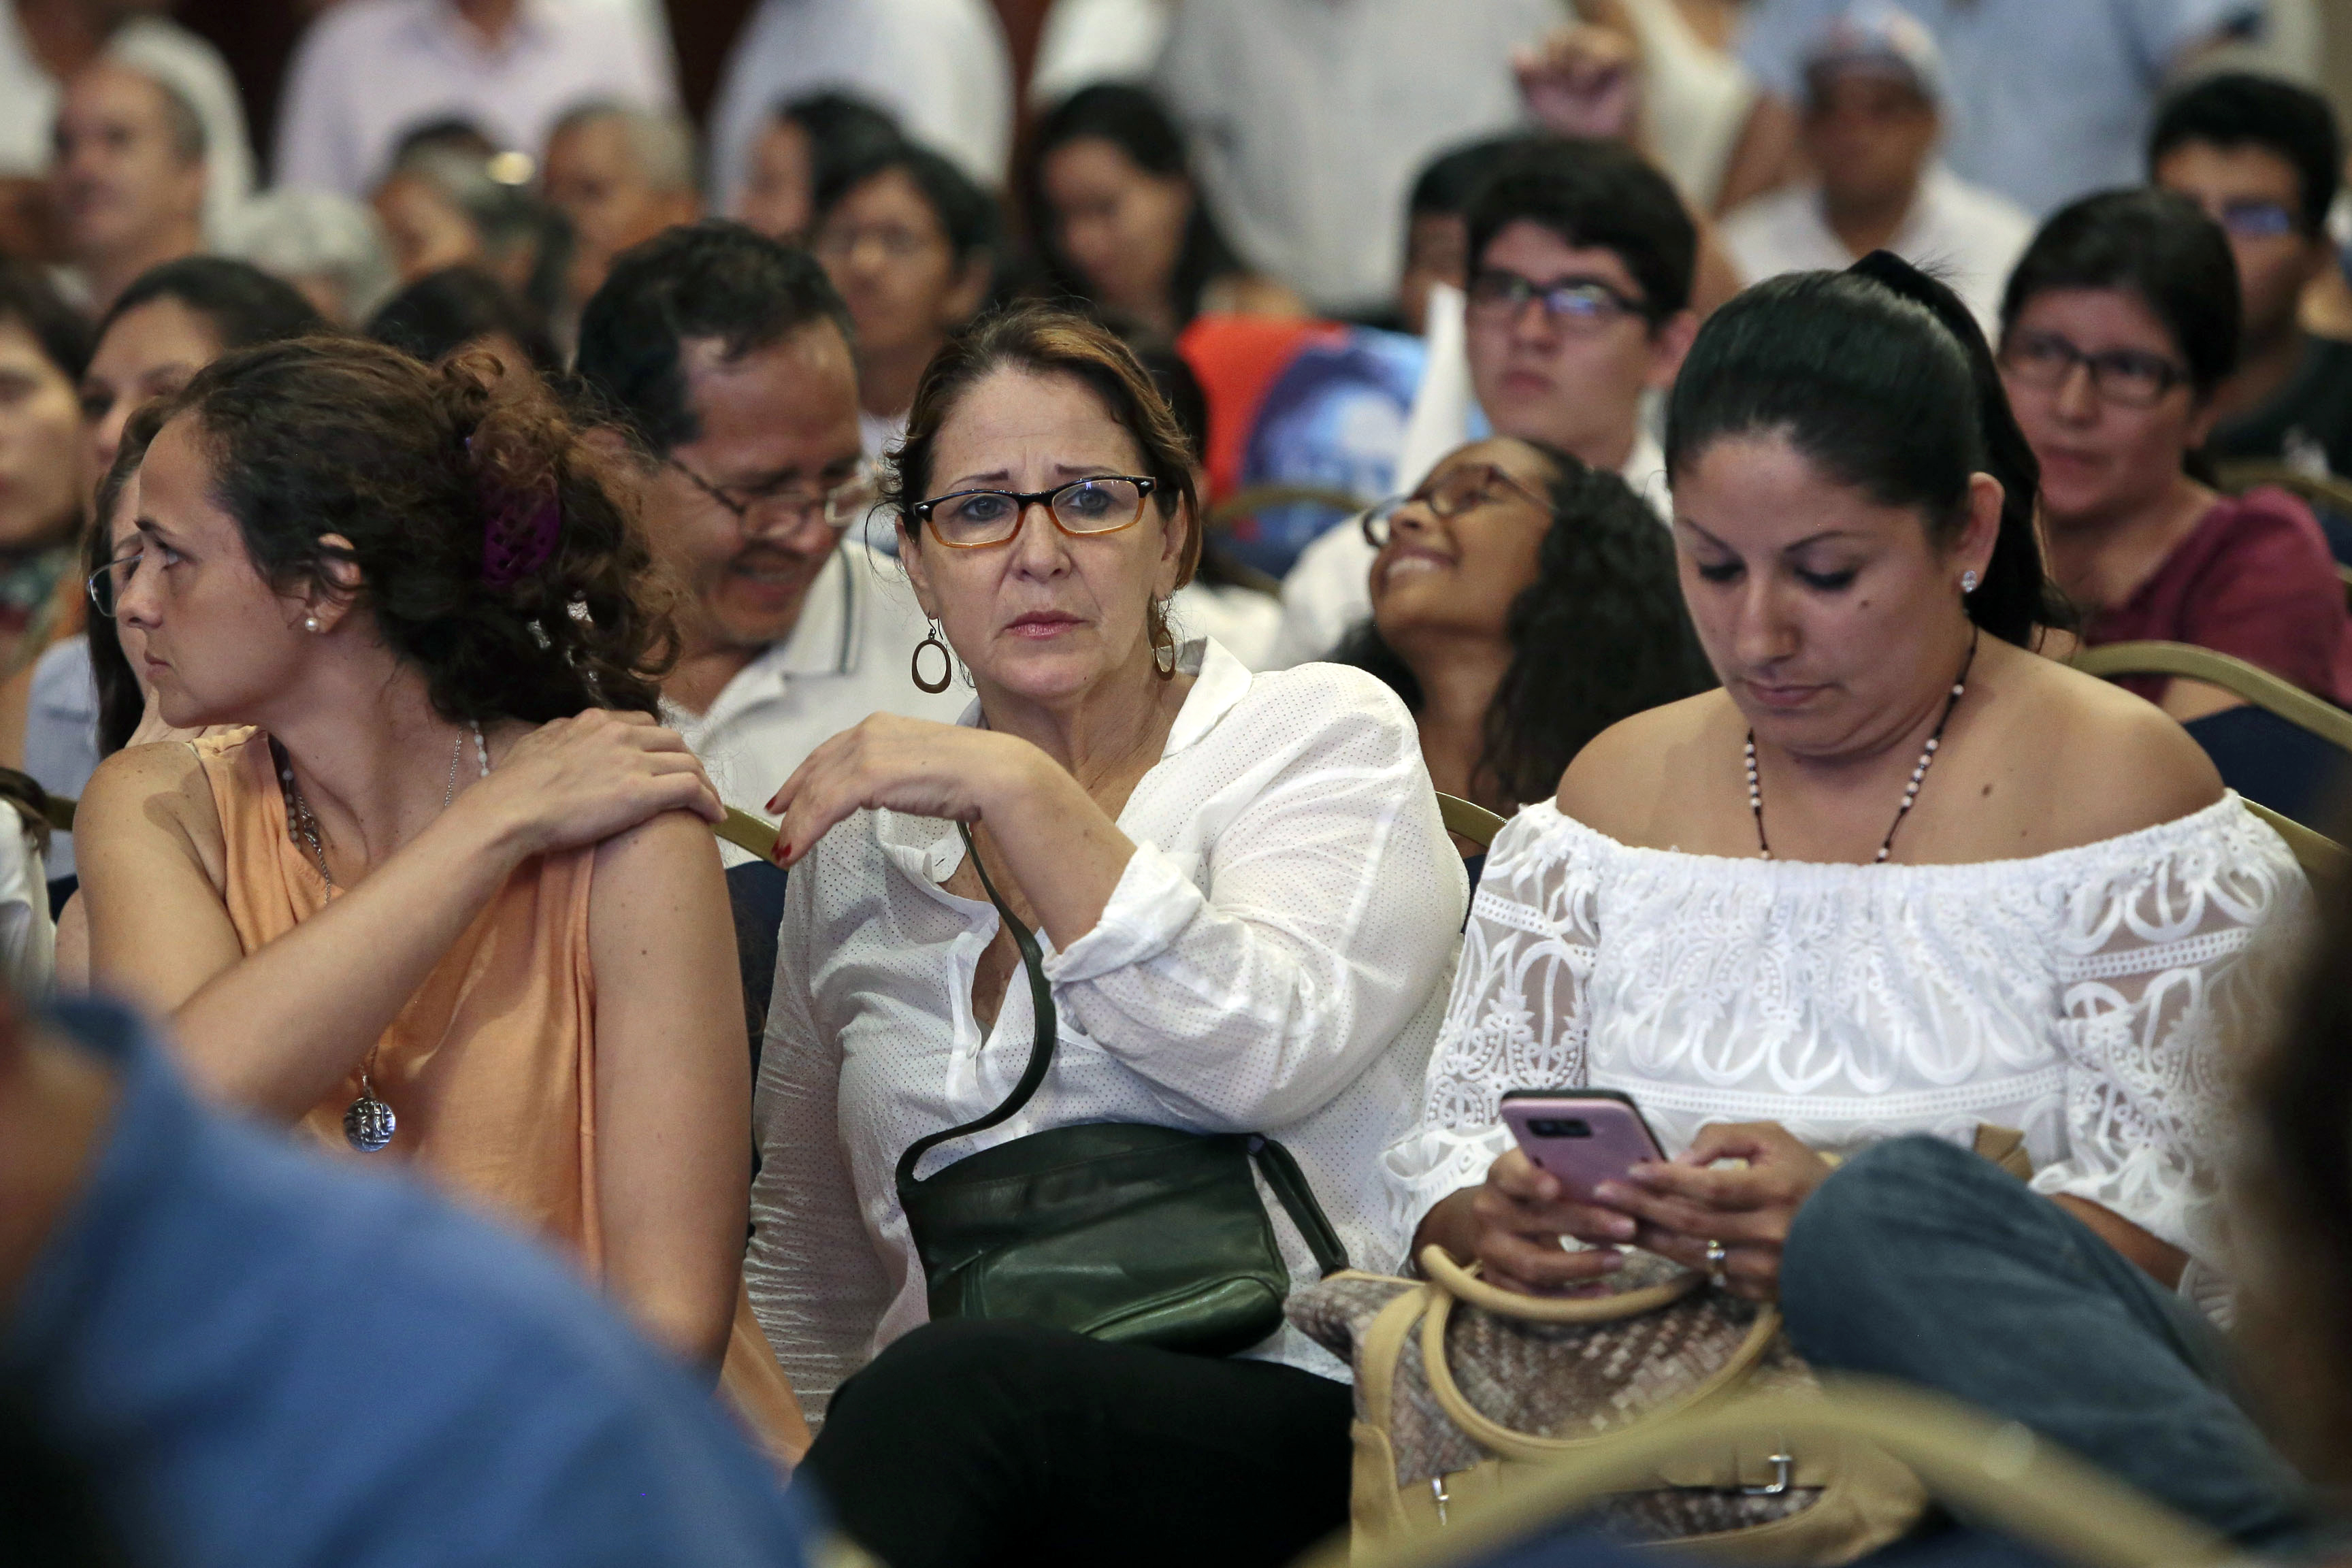 Supporters of Ecuadorian presidential candidate Guillermo Lasso react as they watch the National Election Council's partial official results, which point to a possible victory for socialist candidate Lennin Moreno in the runoff elections, although the final results have not yet been announced, in Guayaquil, Ecuador on April 2, 2017. (JUAN CEVALLOS/AFP/Getty Images)